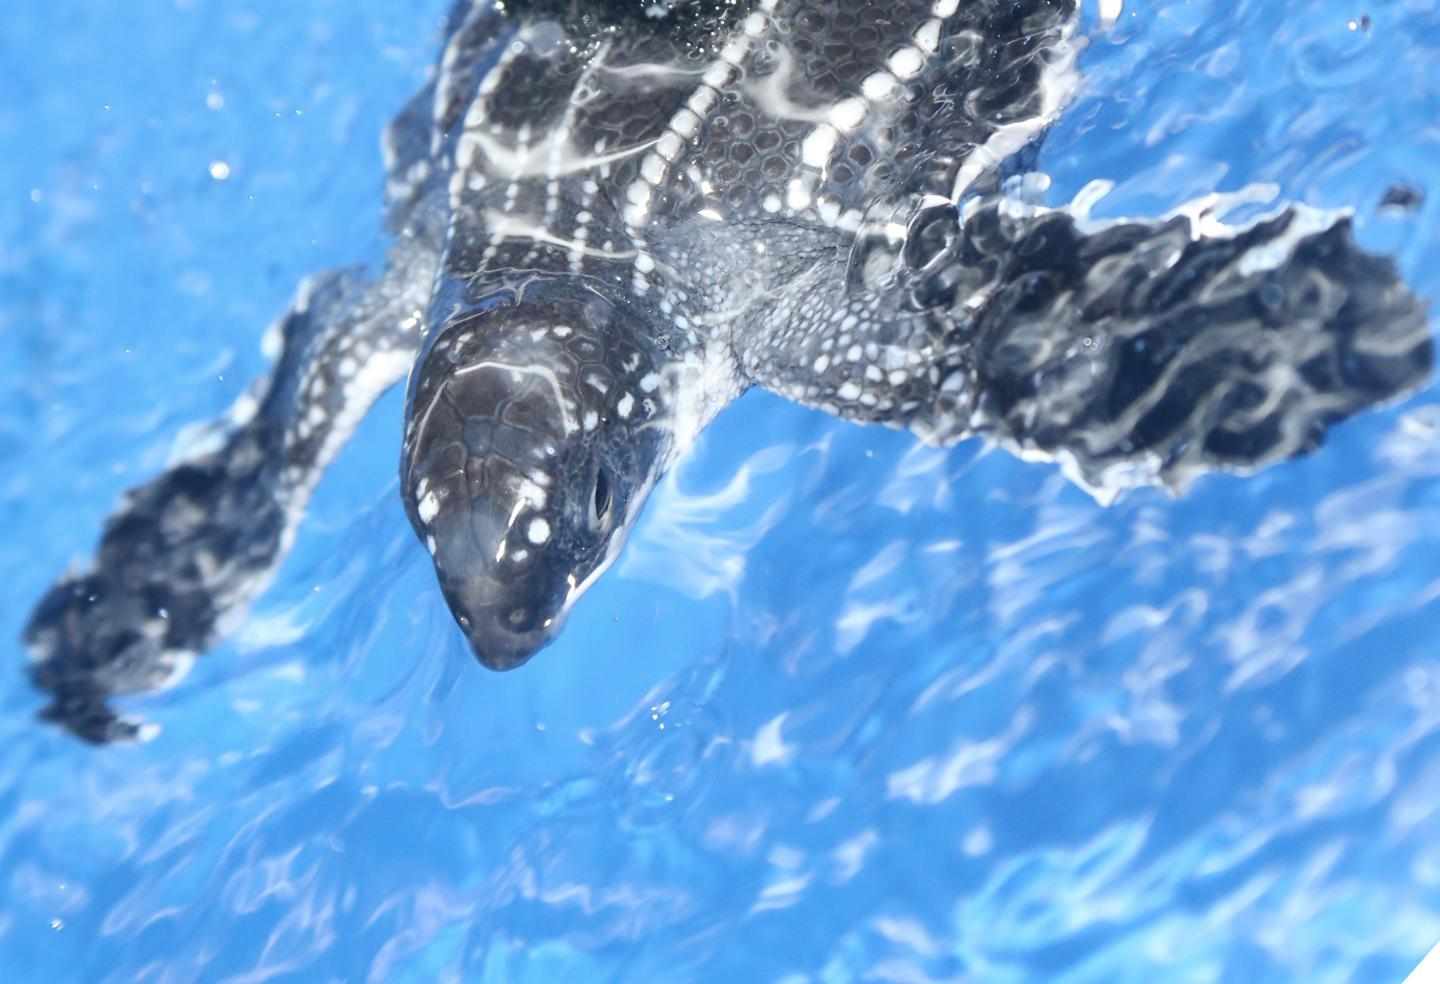 Plump turtles swim better: First models of swimming animals